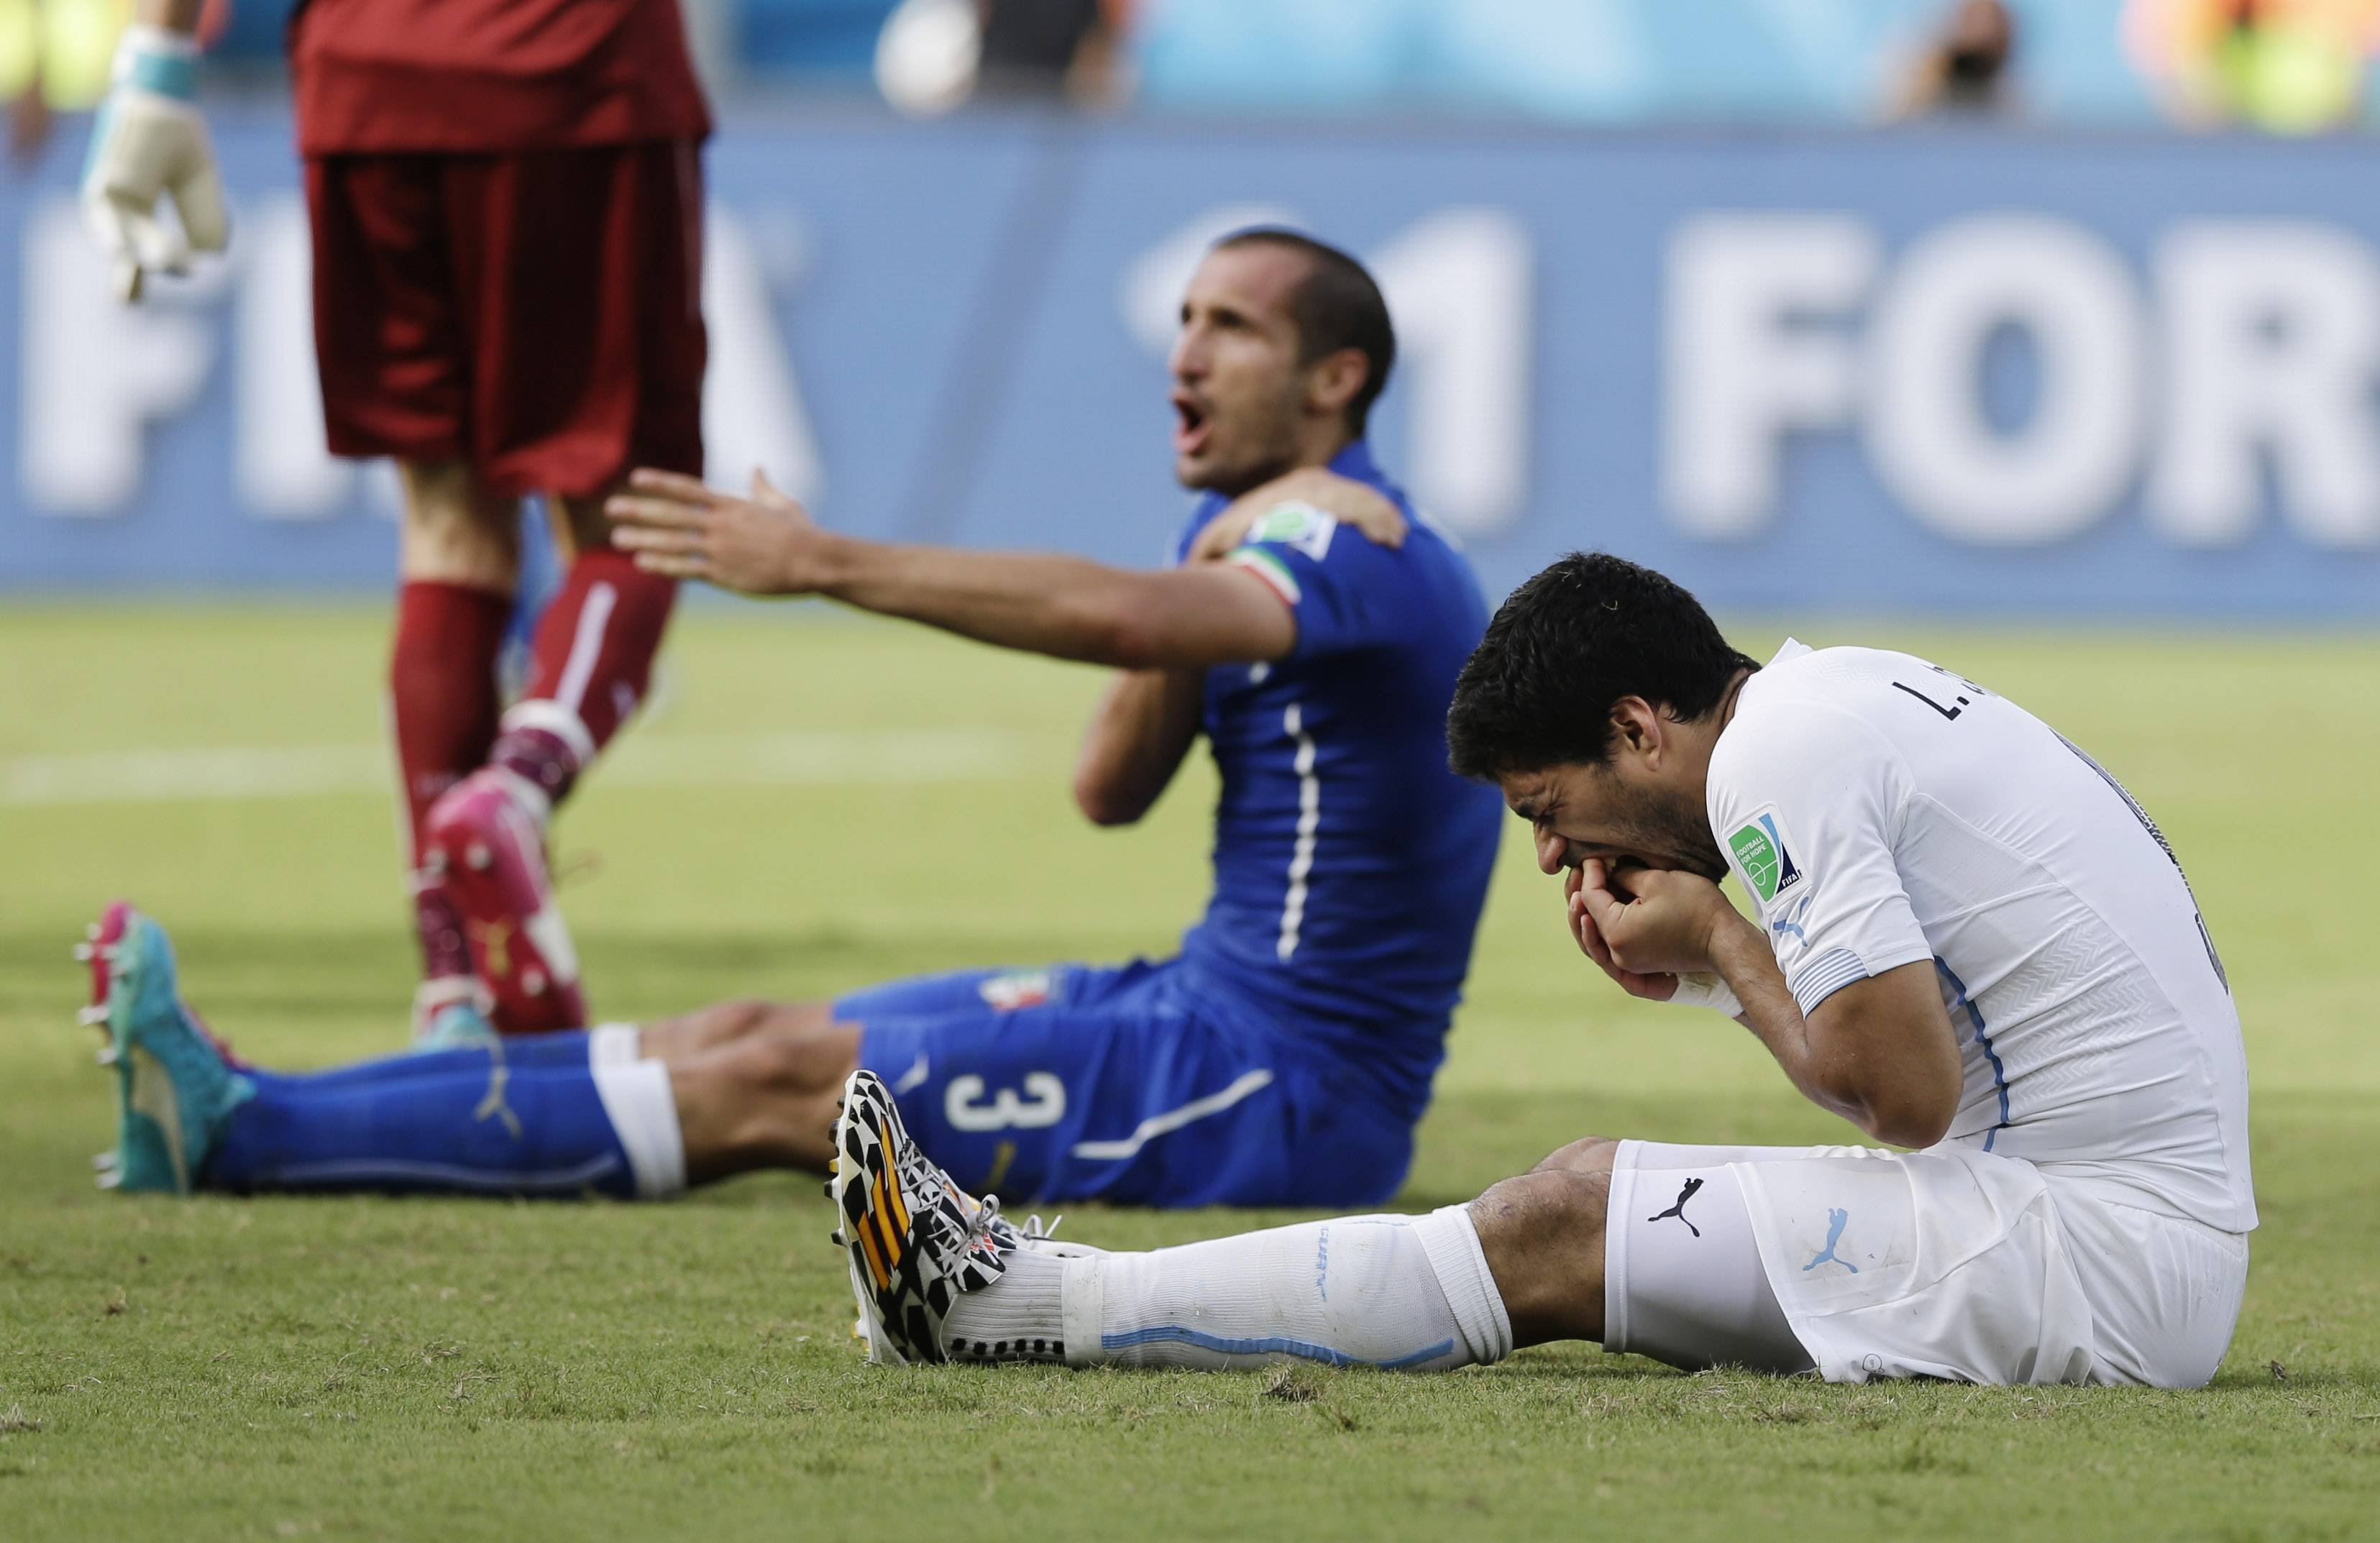 Italy's Giorgio Chiellini complains after Uruguay's Luis Suarez ran into his shoulder with his teeth Tuesday during a Group D World Cup match at the Arena das Dunas in Natal, Brazil.